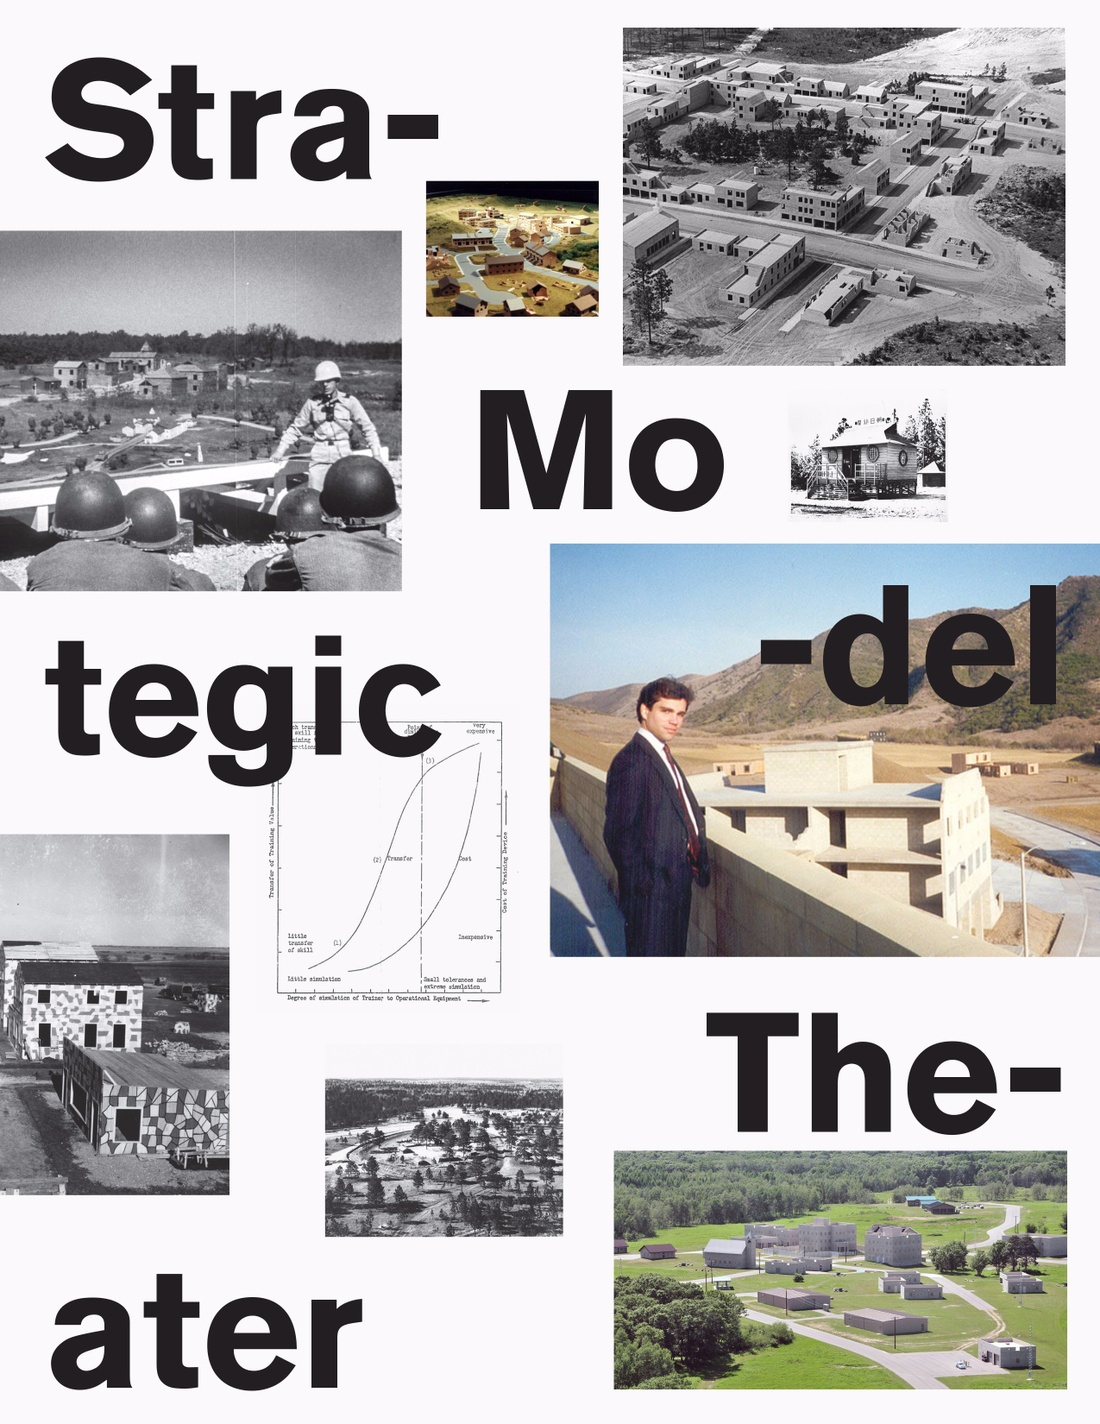 Strategic model theater collage.